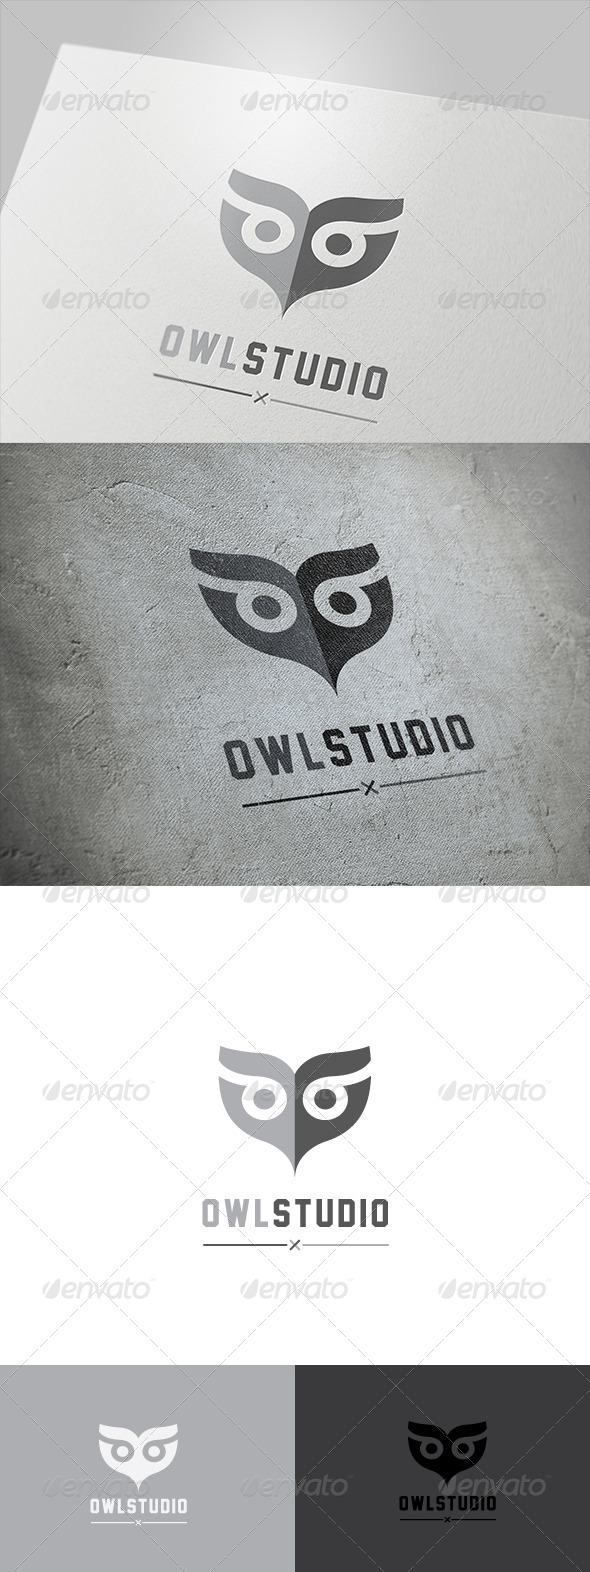 Owl Studio  - Animals Logo Templates